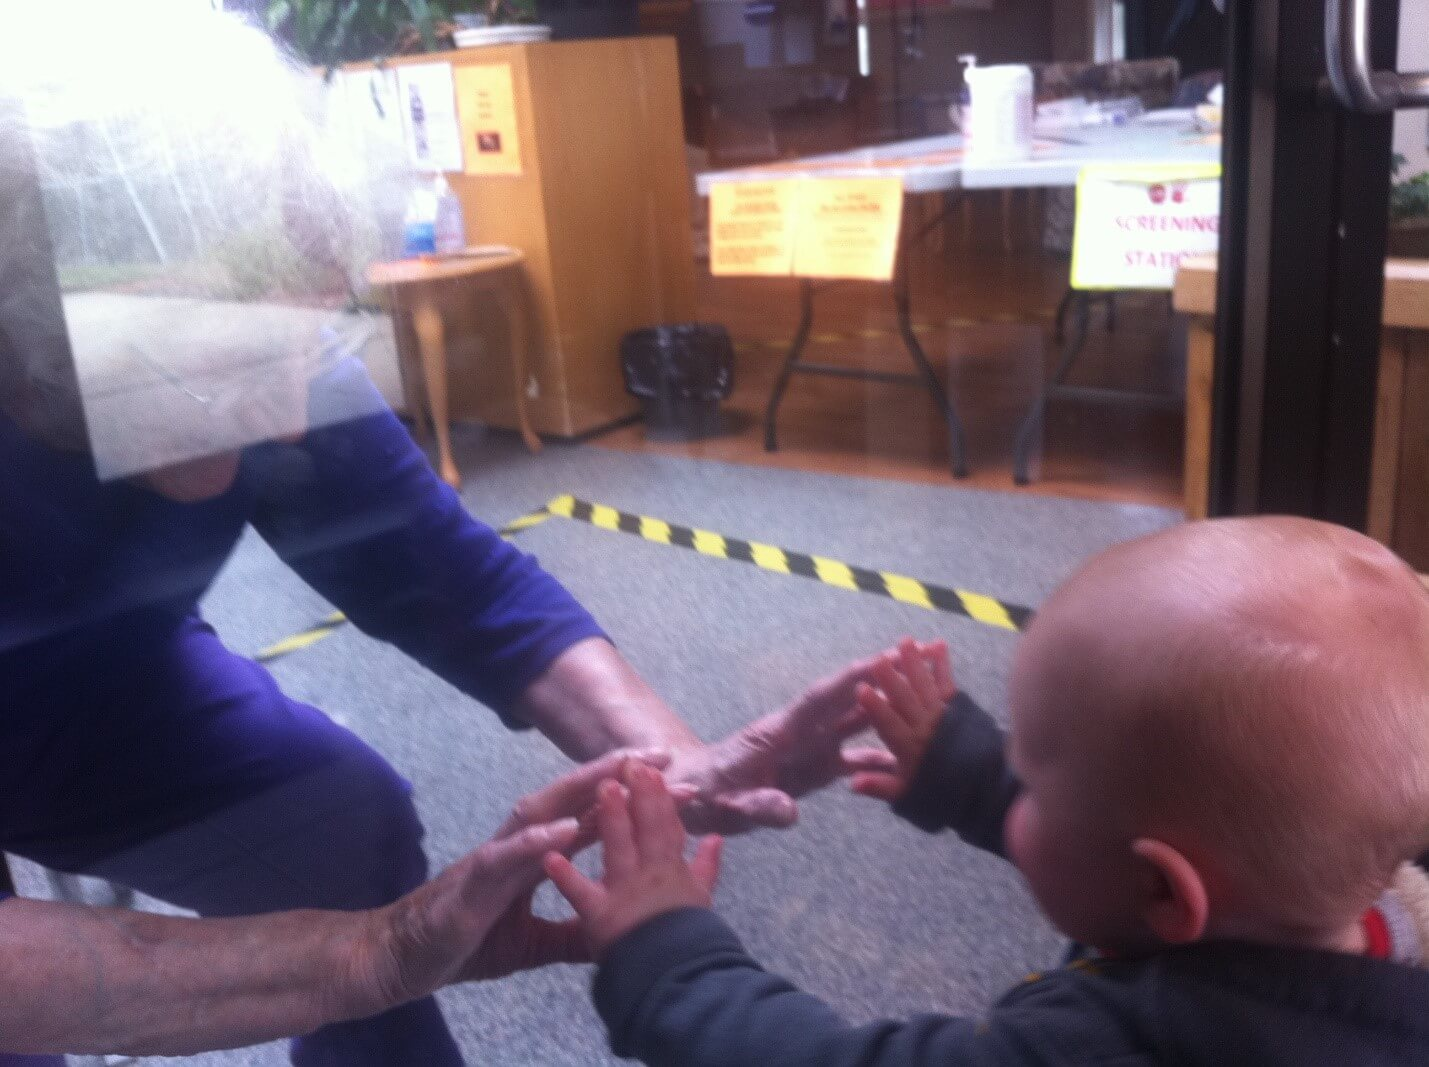 Child visiting grandparent while physically distancing